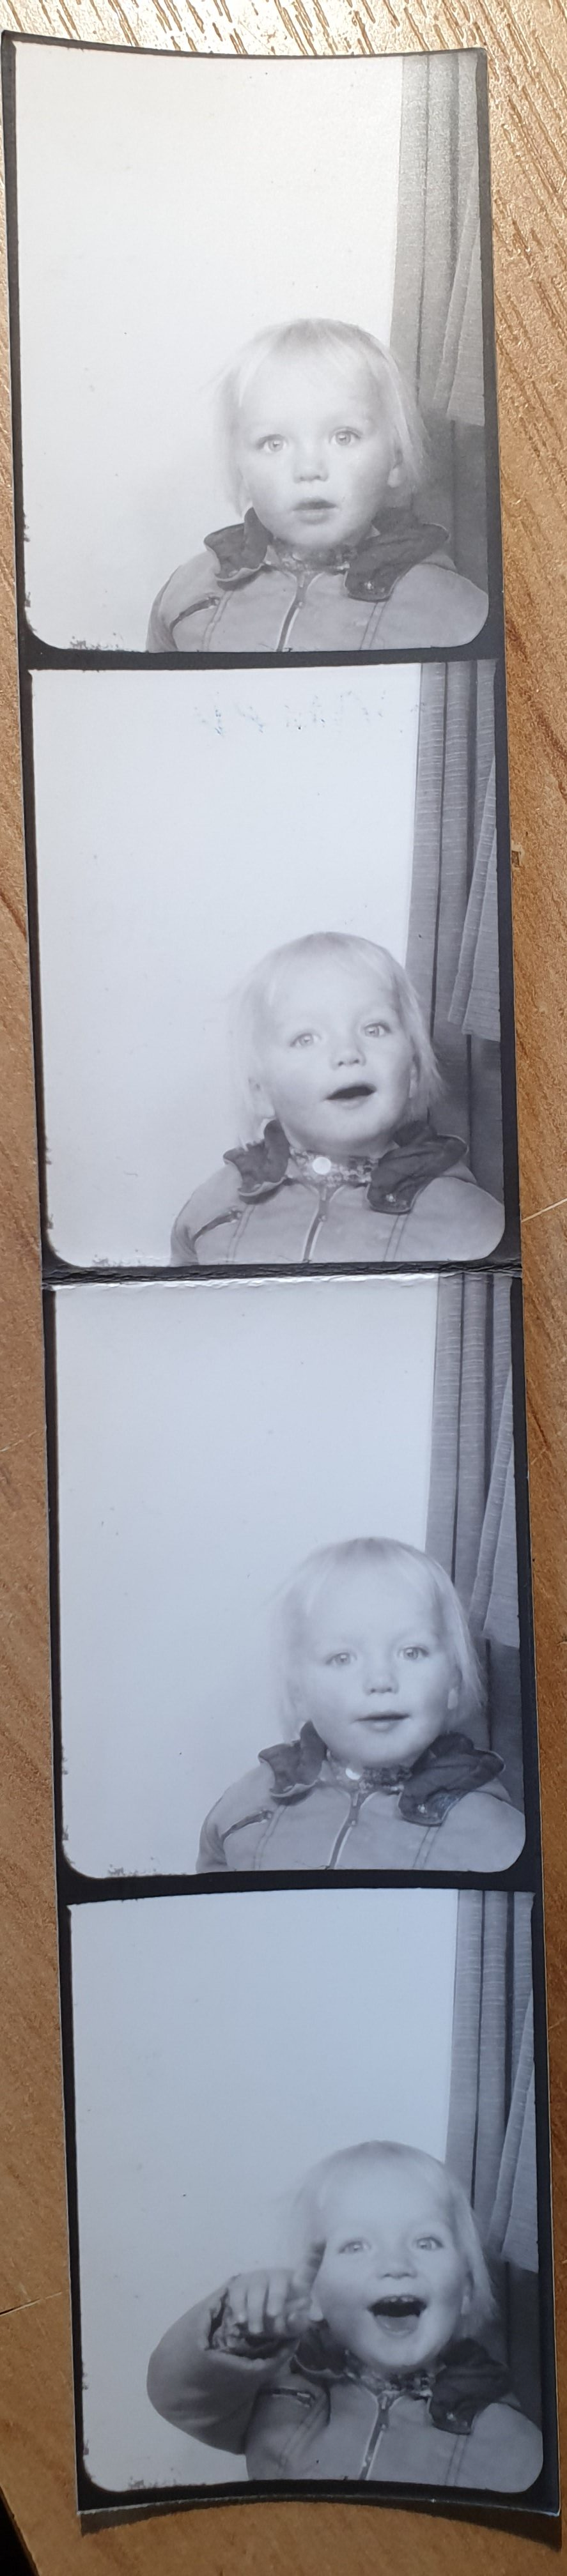 Dan, ~22 months old, in a photo booth